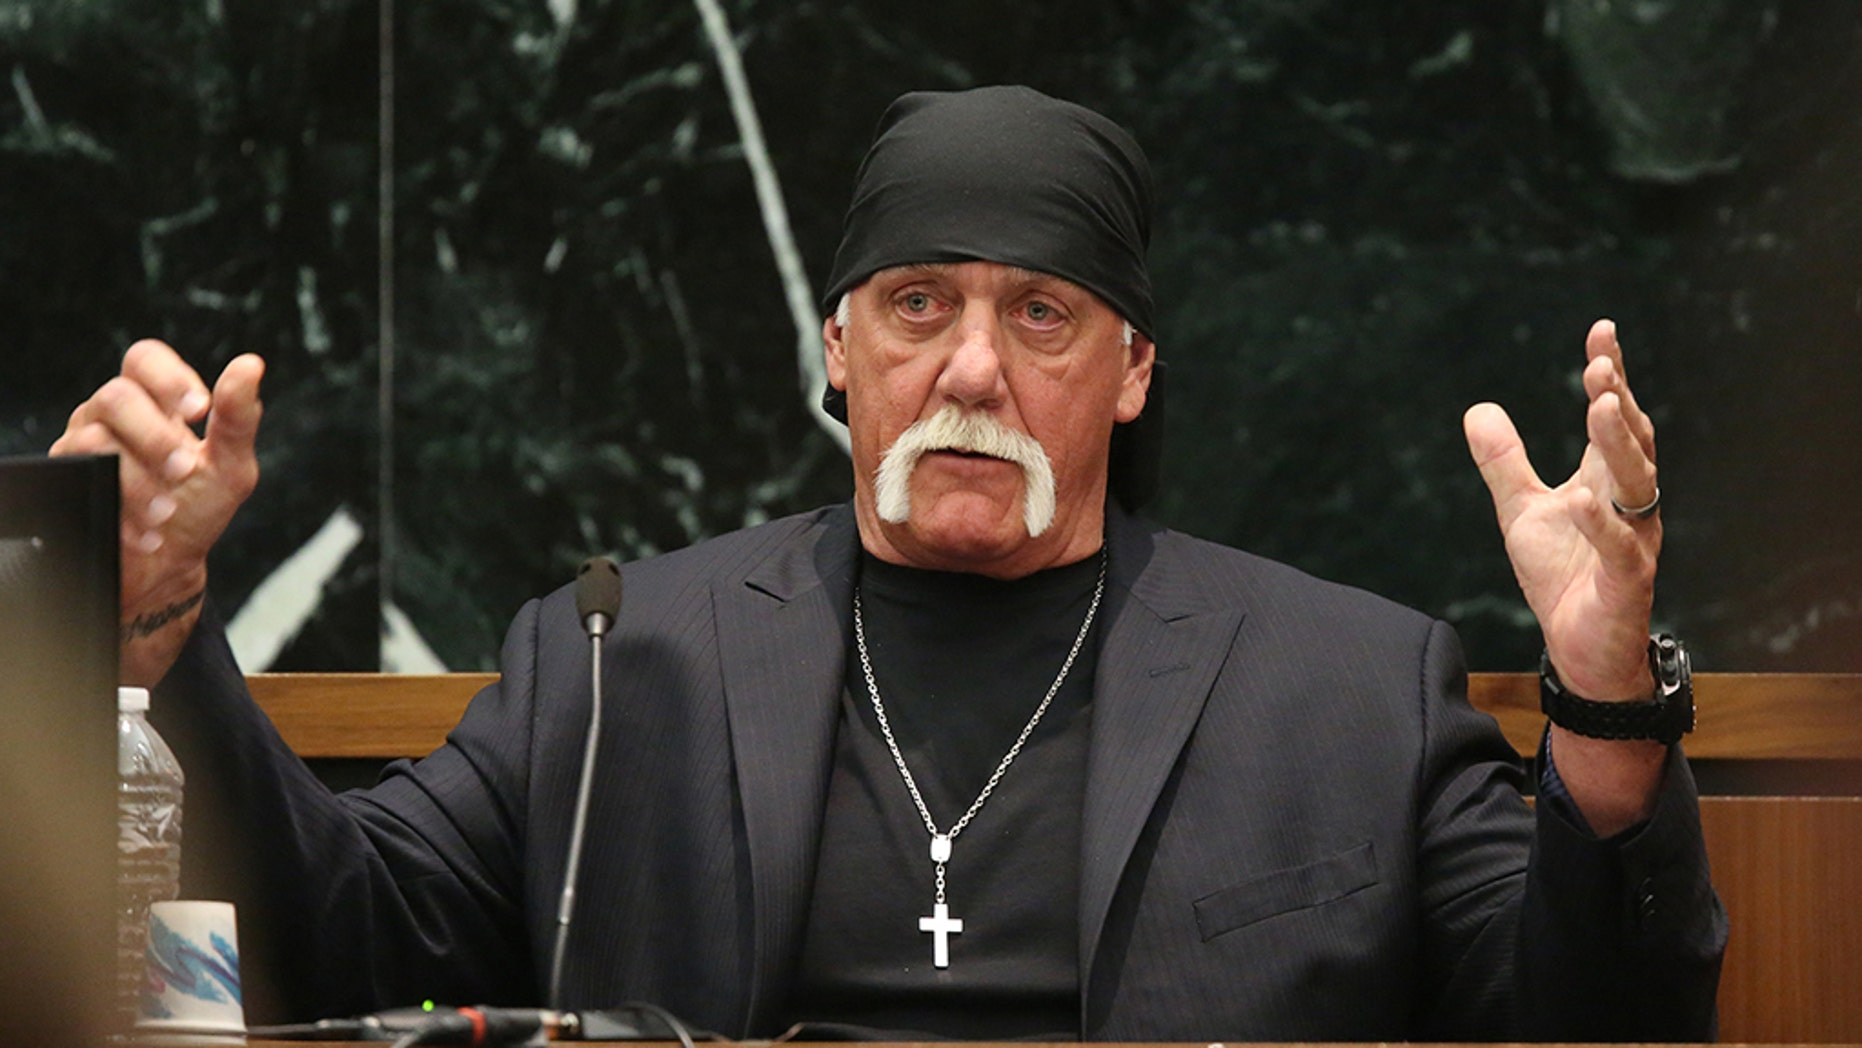 """Terry Bollea, aka Hulk Hogan, testifies in court during his trial against Gawker Media, in St Petersburg, Florida March 8, 2016. Hogan testified on Tuesday he no longer was """"the same person I was before"""" following personal setbacks and the humiliation suffered when the online news outlet Gawker posted a video of him having sex with a friend's wife. REUTERS/Tampa Bay Times/John Pendygraft/Pool MANDATORY NYPOST OUT - TM3EC3816Q501"""